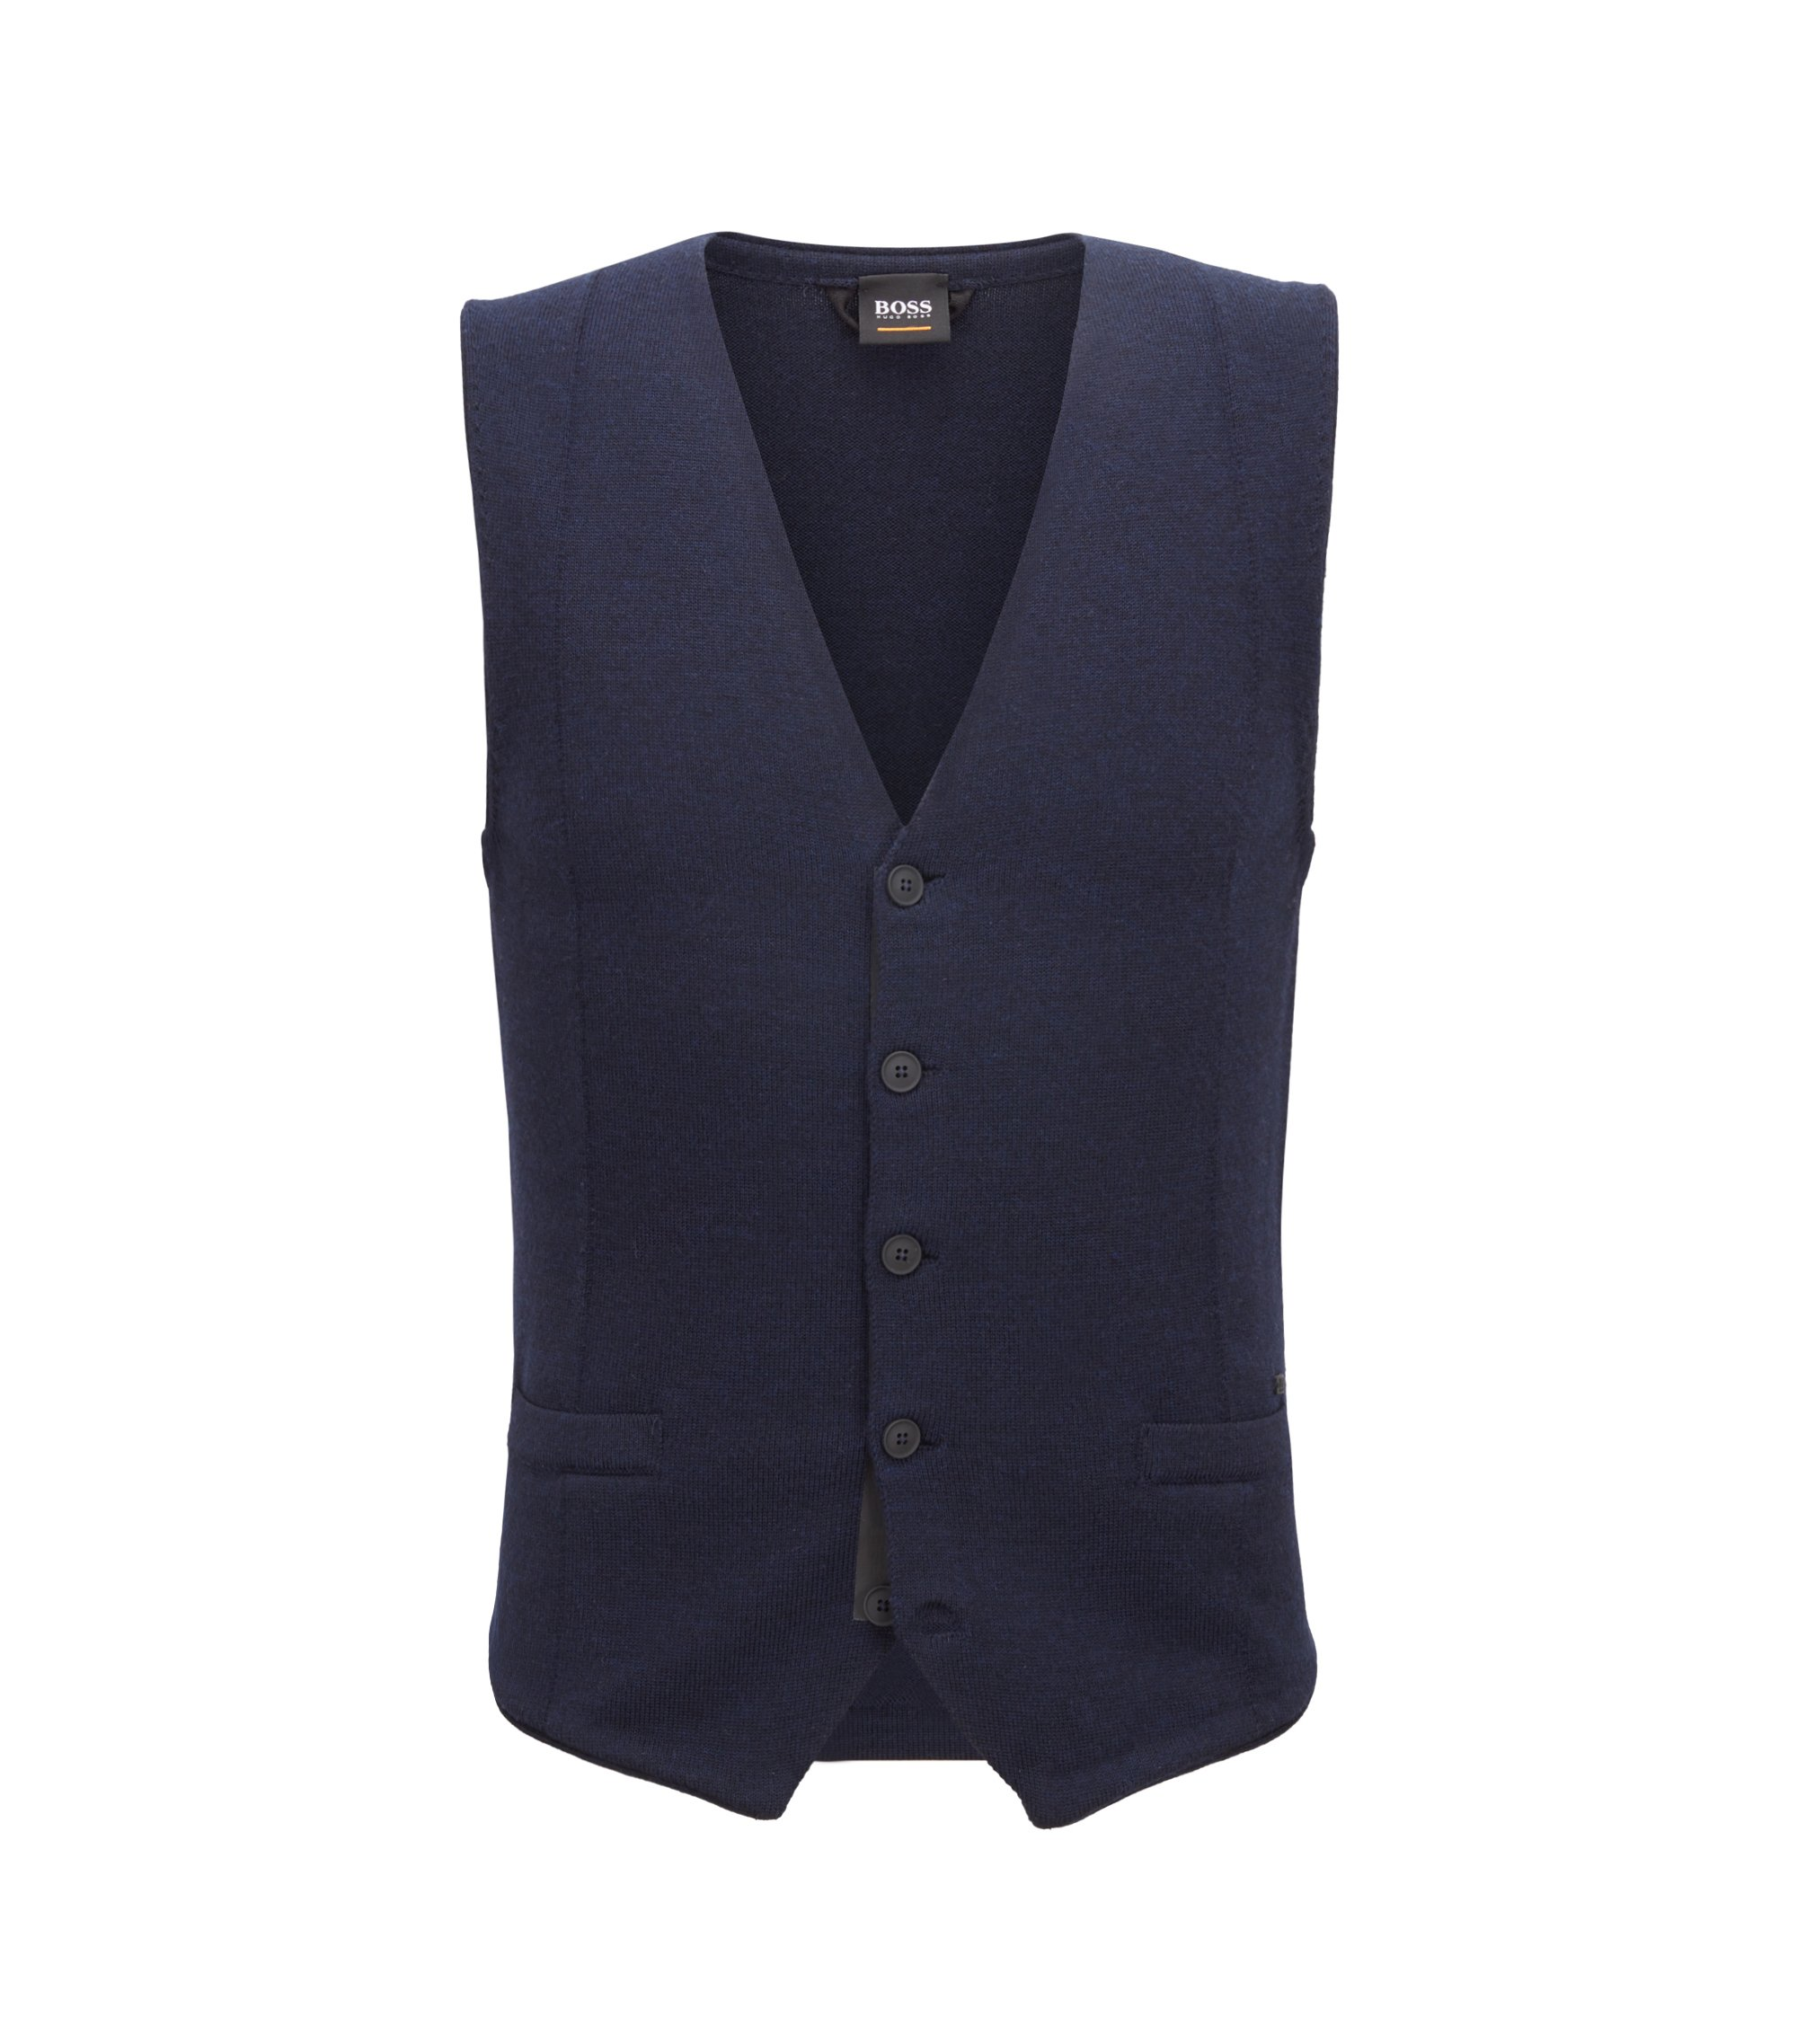 Gilet slim fit in lana merino con bottoni gommati, Blu scuro